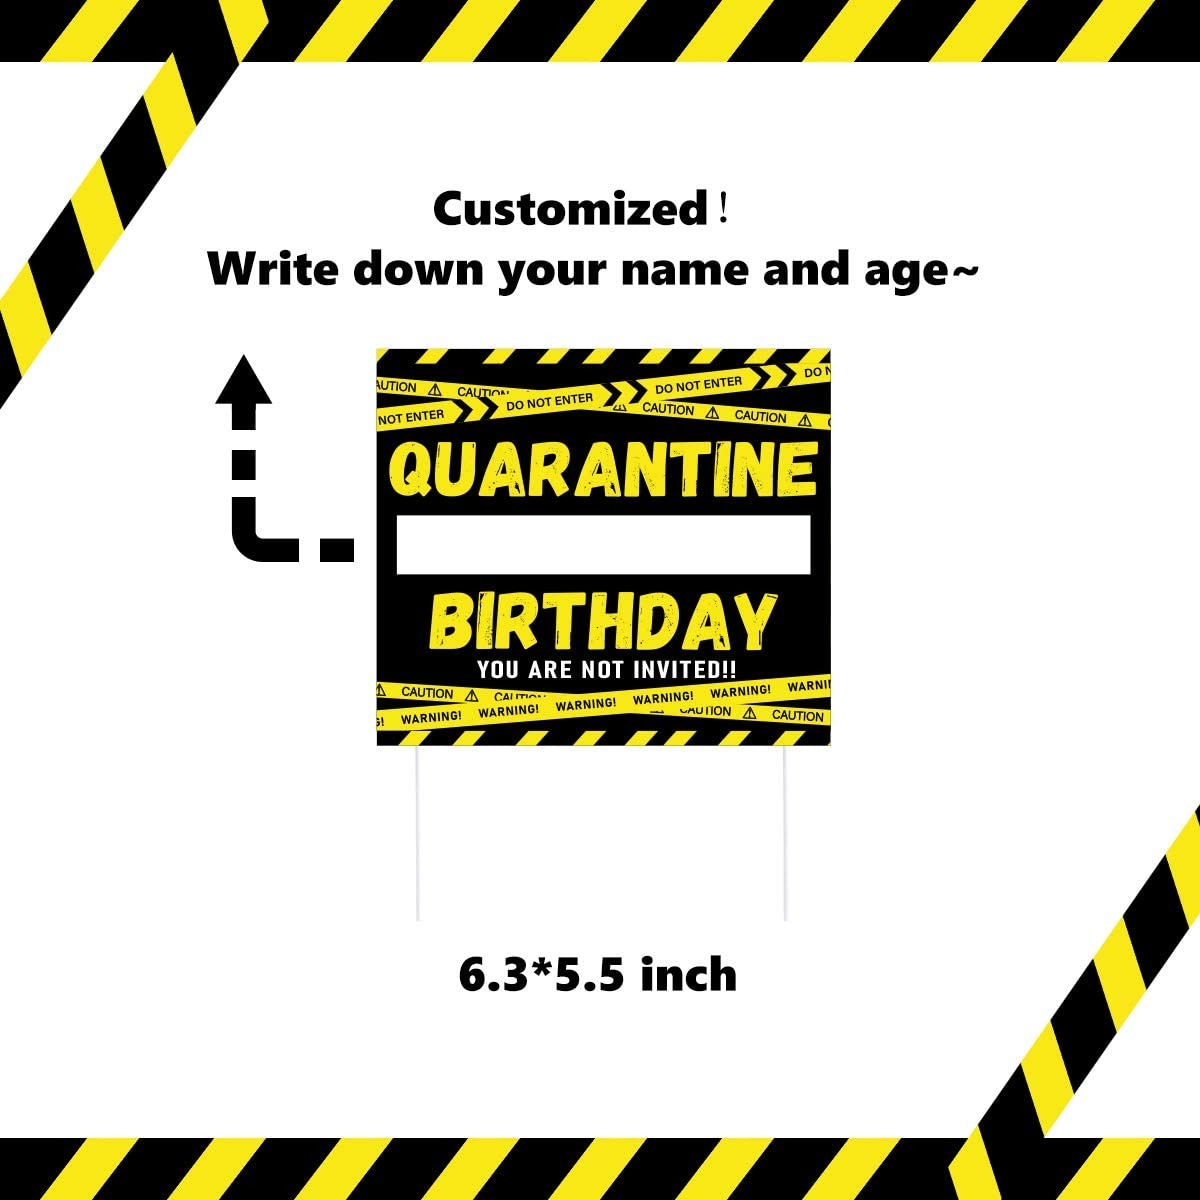 Quarantine Cake Decorations Quarantine Birthday Cake Topper 24 Cupcake Toppers for Stay Home Party Social Distancing Birthday Party Supplies